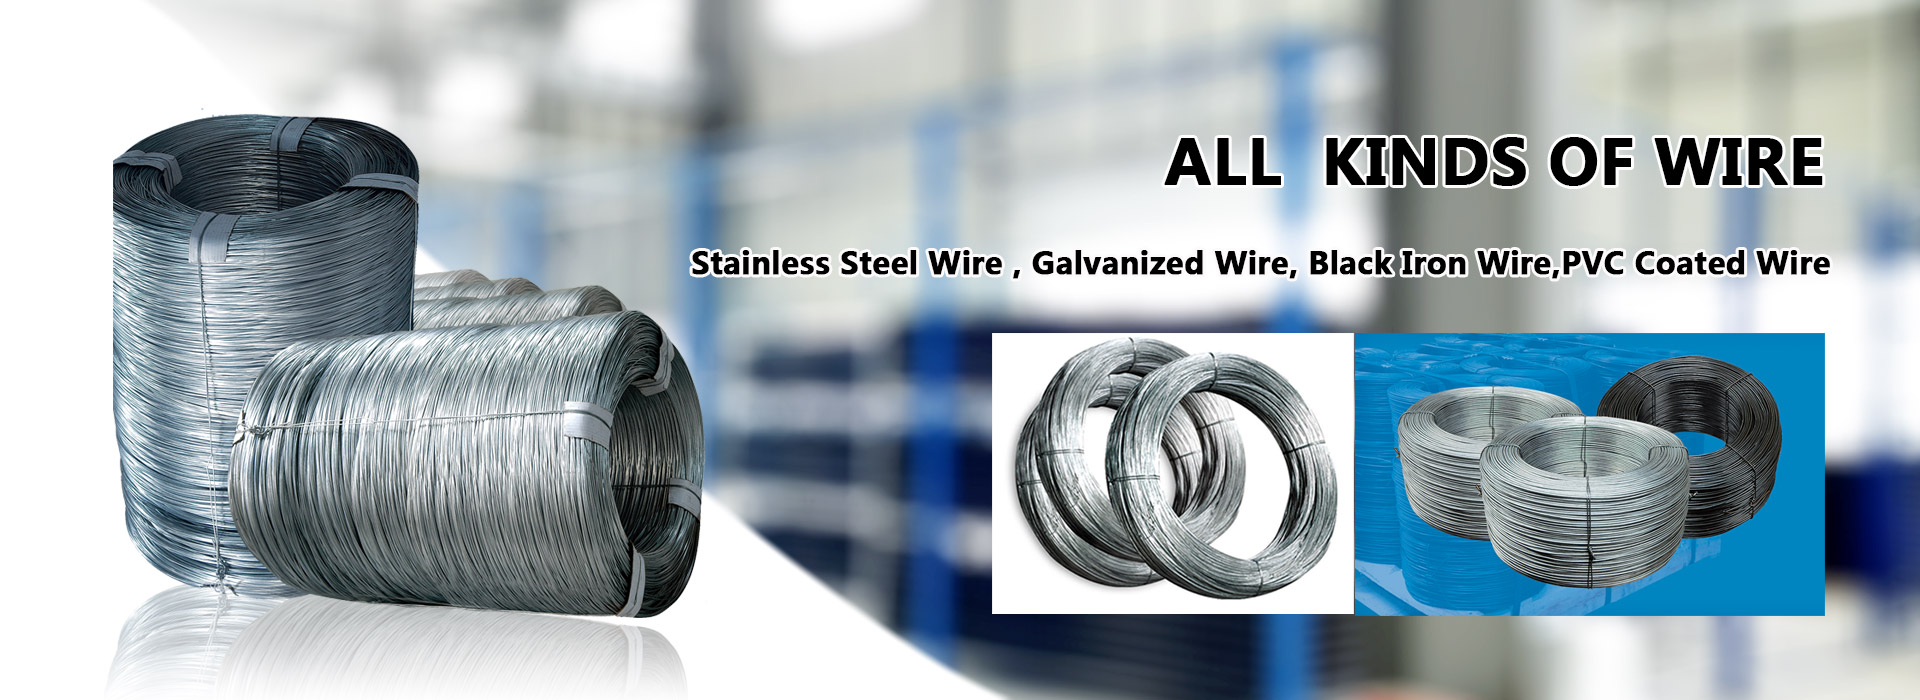 ALL_KINDS_OF_WIRE